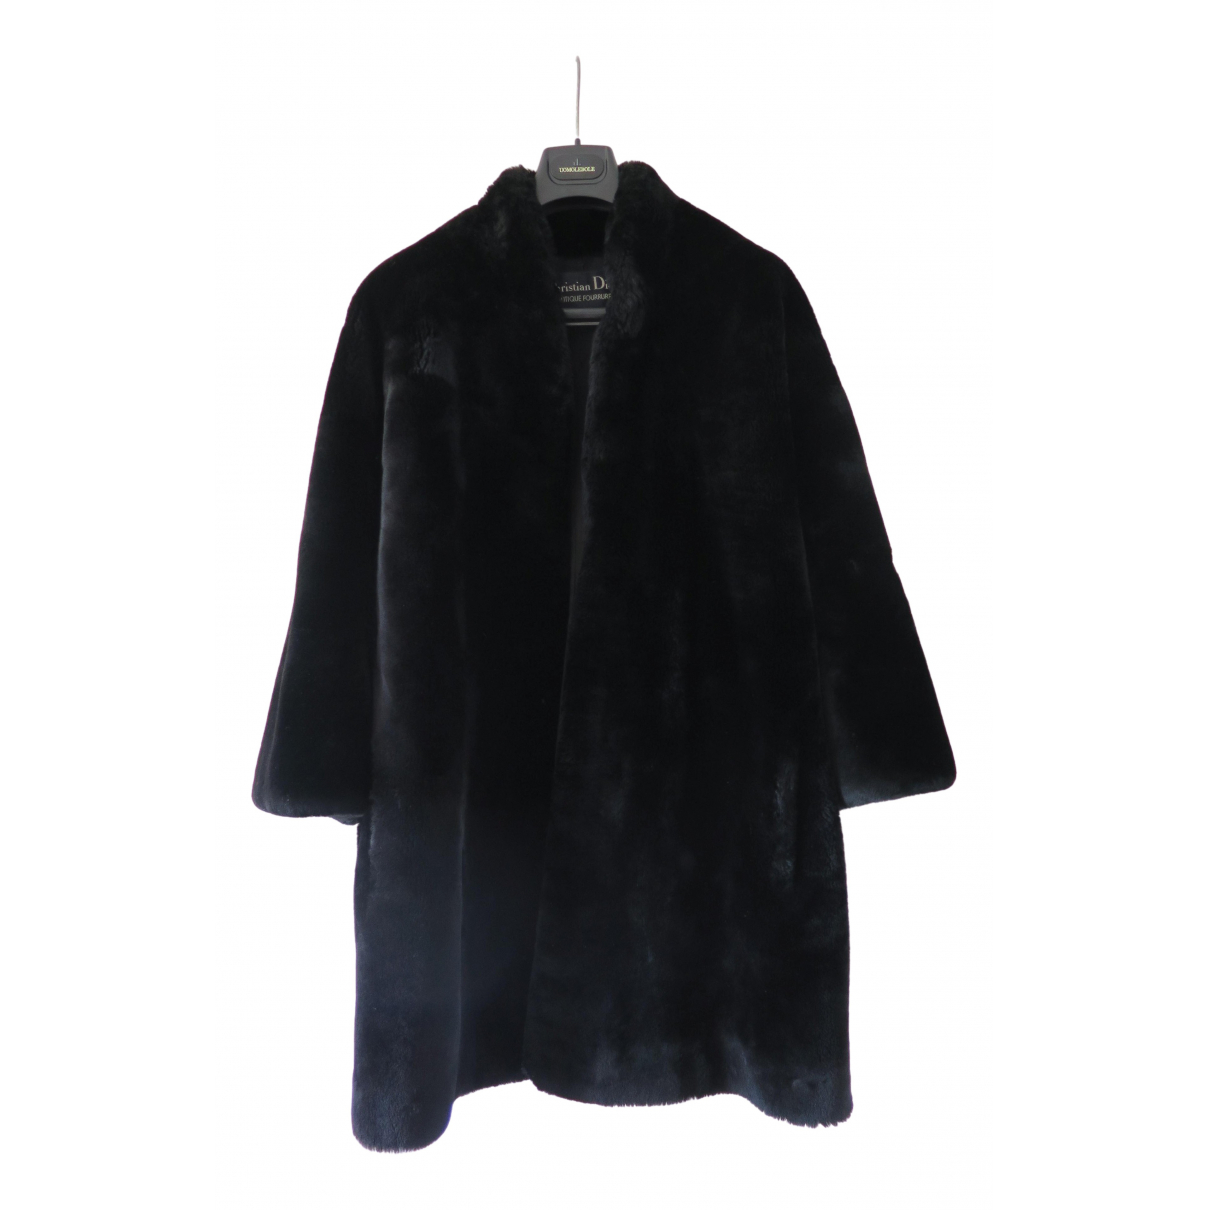 Dior \N Black Shearling coat for Women 38 FR